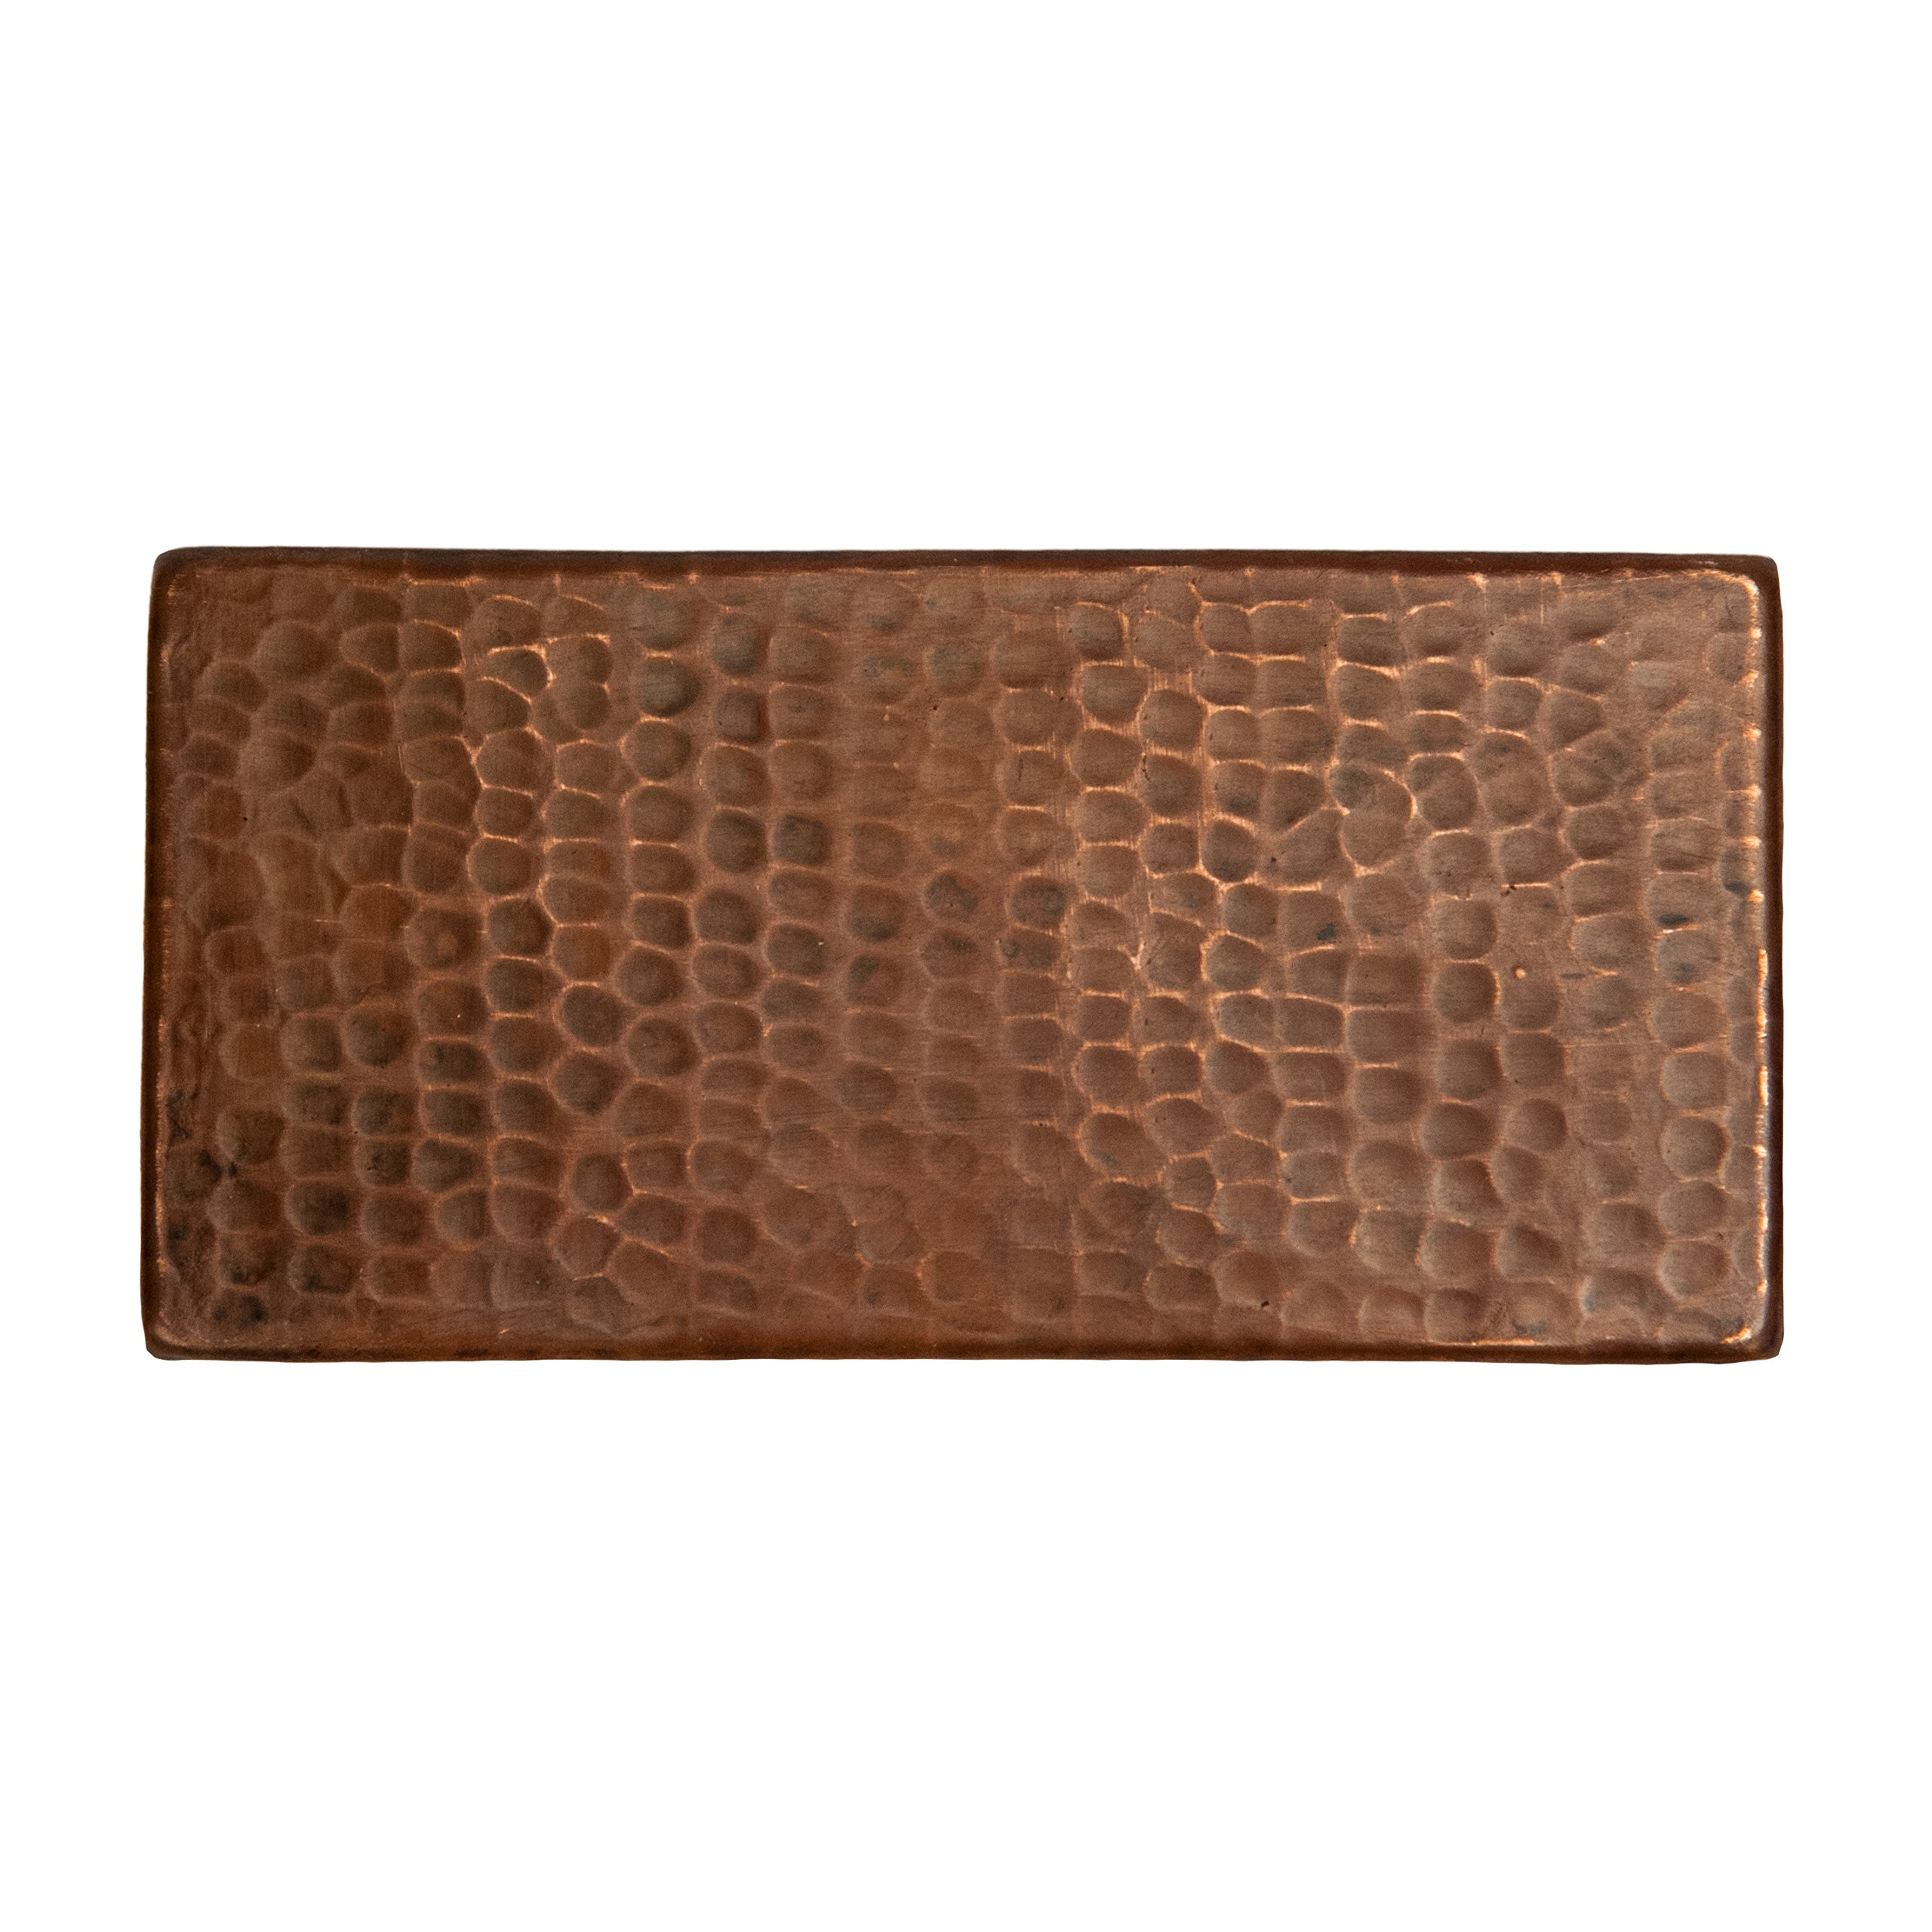 Premier Copper Products T36DBH_PKG4 3-Inch by 6-Inch Hammered Copper Tile - Quantity 4, Oil Rubbed Bronze